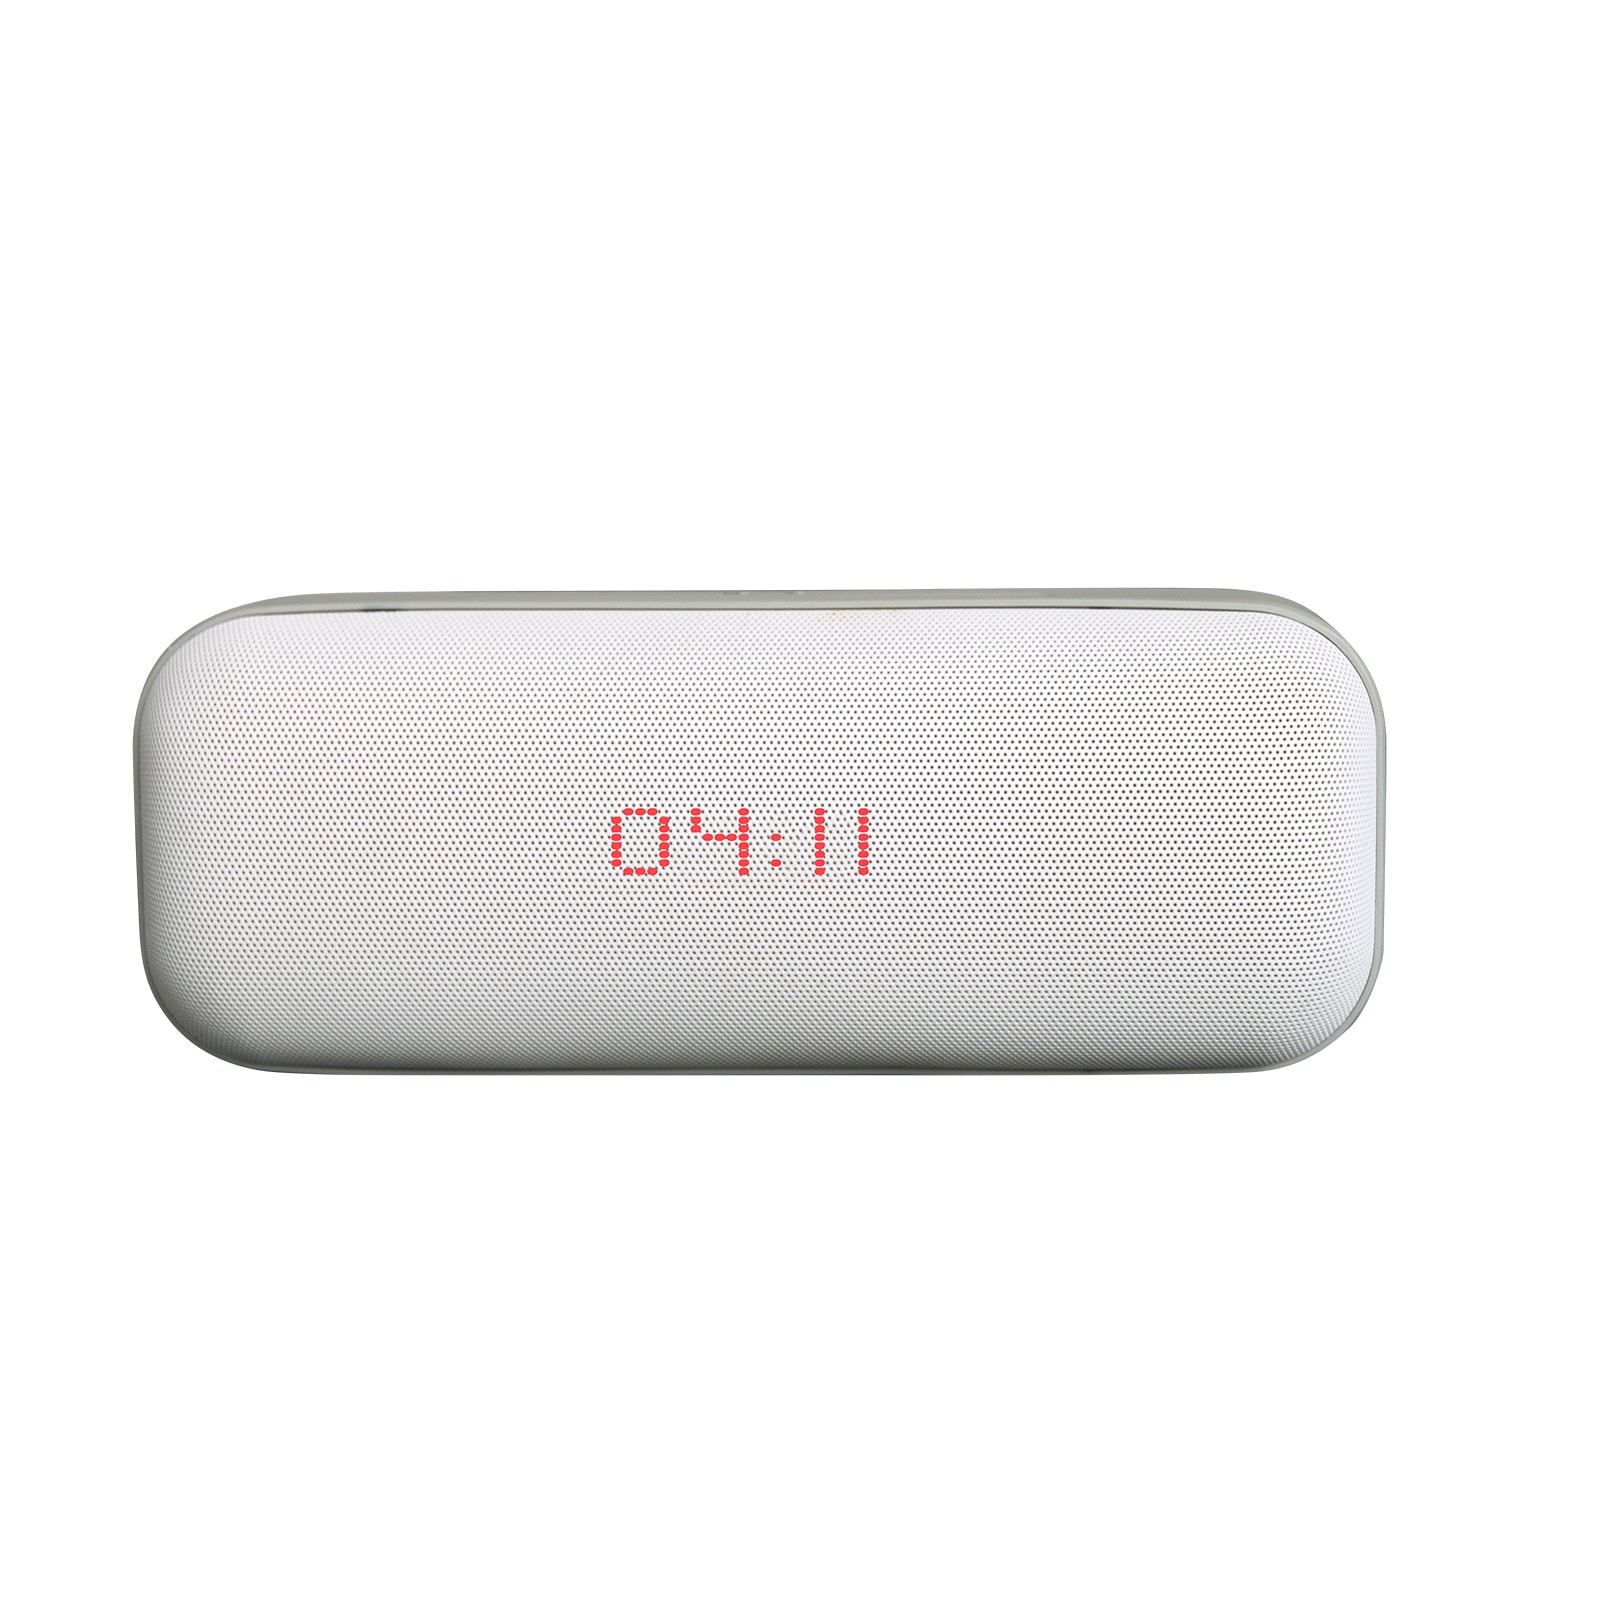 DUST 1HP DU-H3600 Blanc - Enceinte PC DUST - Cybertek.fr - 1